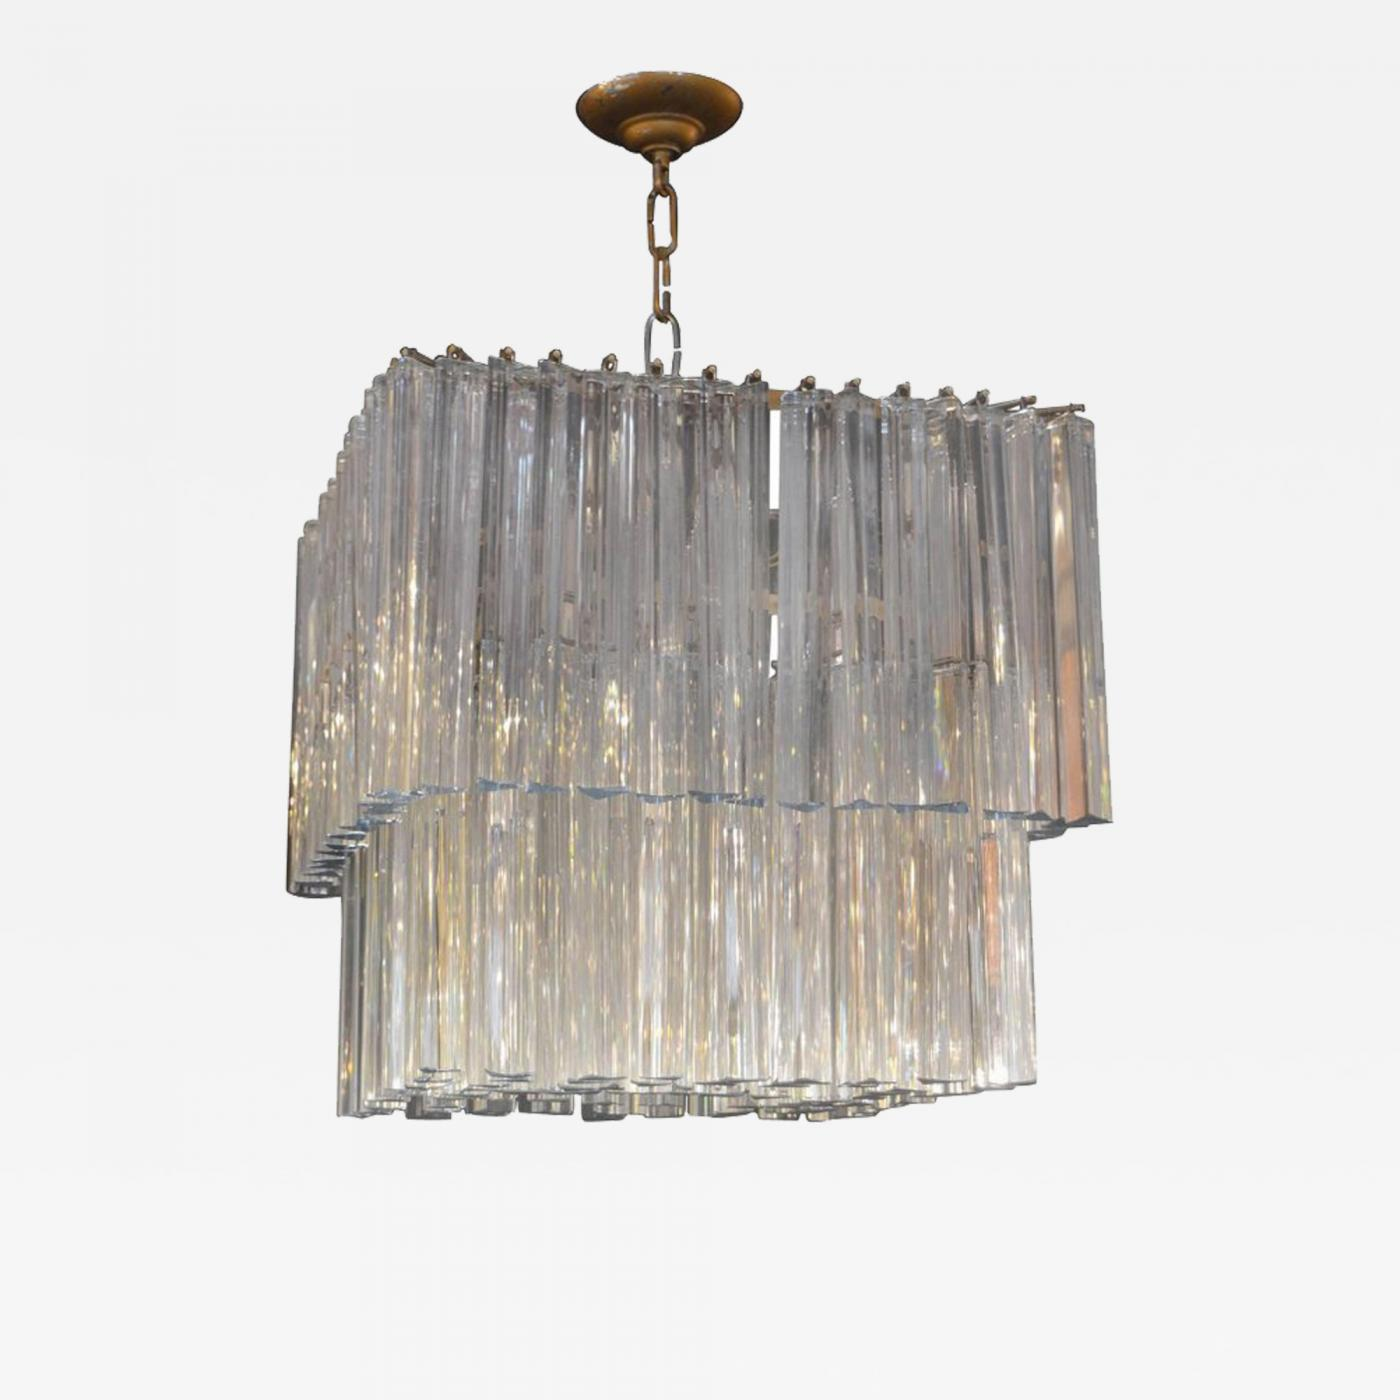 Venini square venini chandelier listings furniture lighting chandeliers and pendants aloadofball Image collections